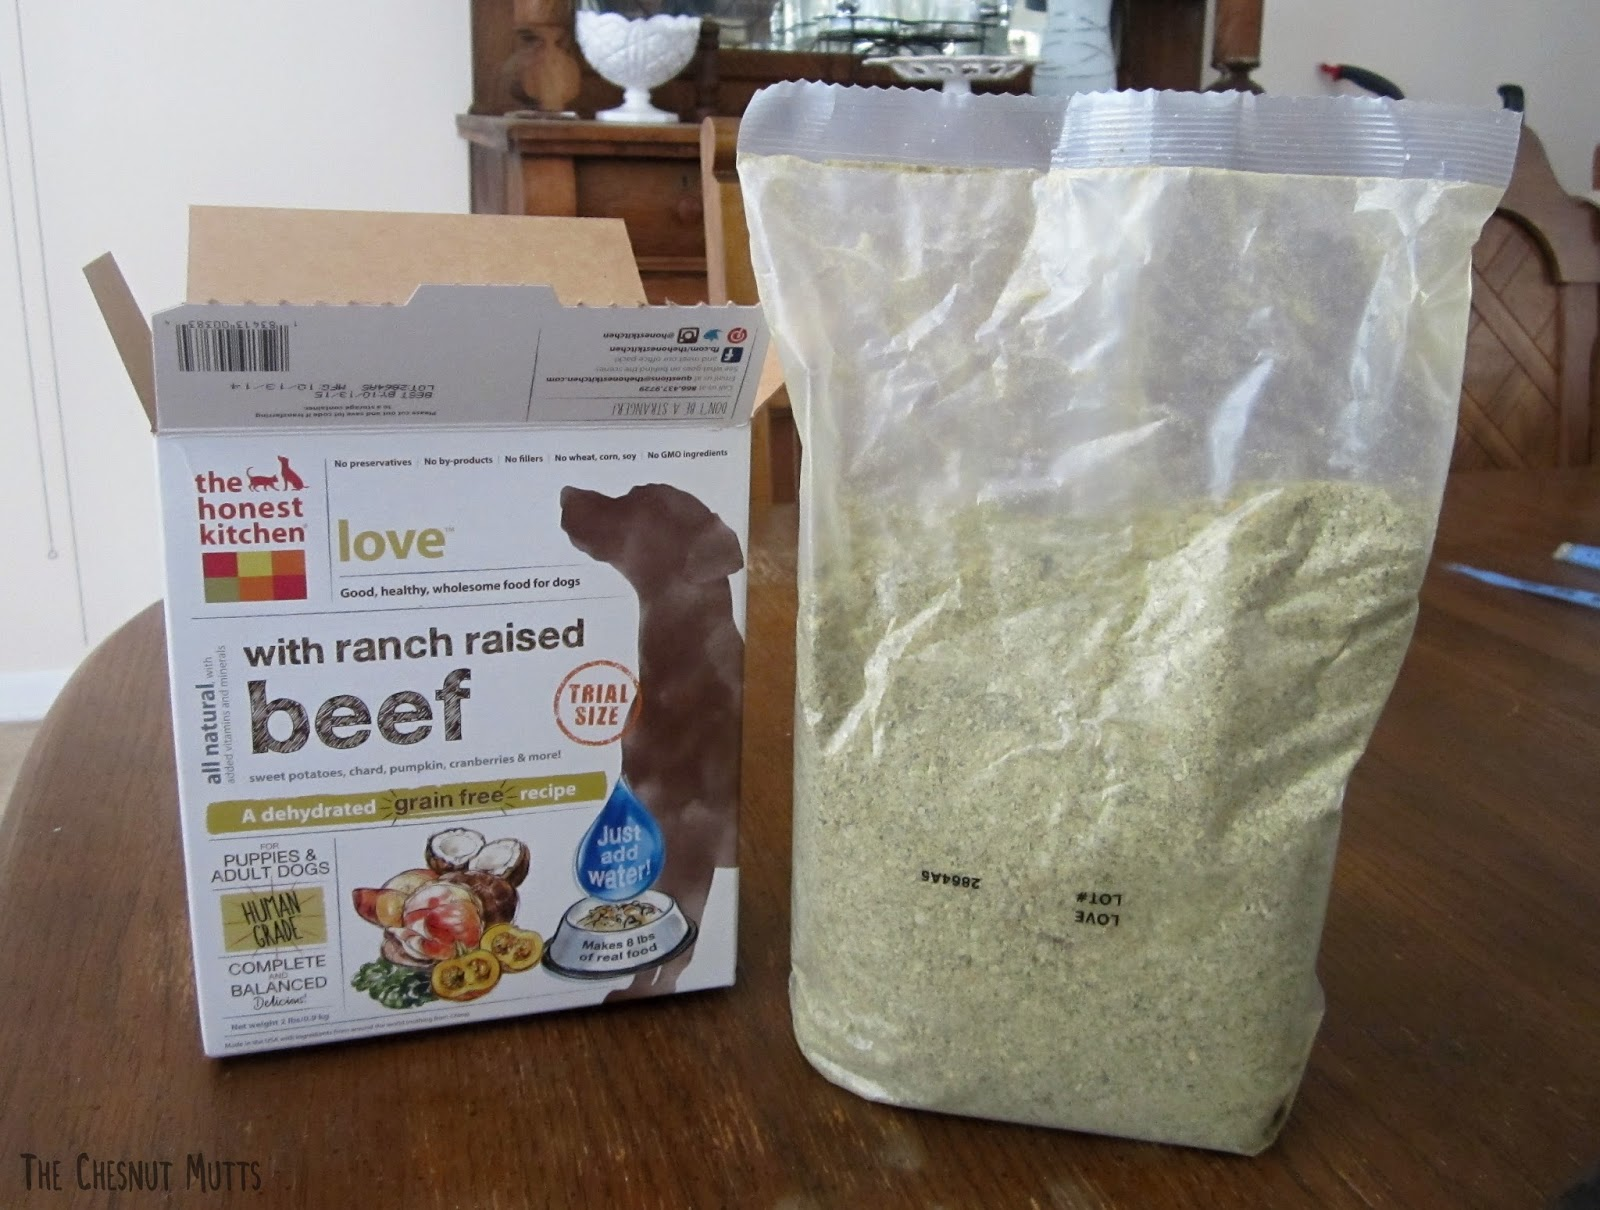 the honest kitchen love with ranch raised beef trial box 2 pound